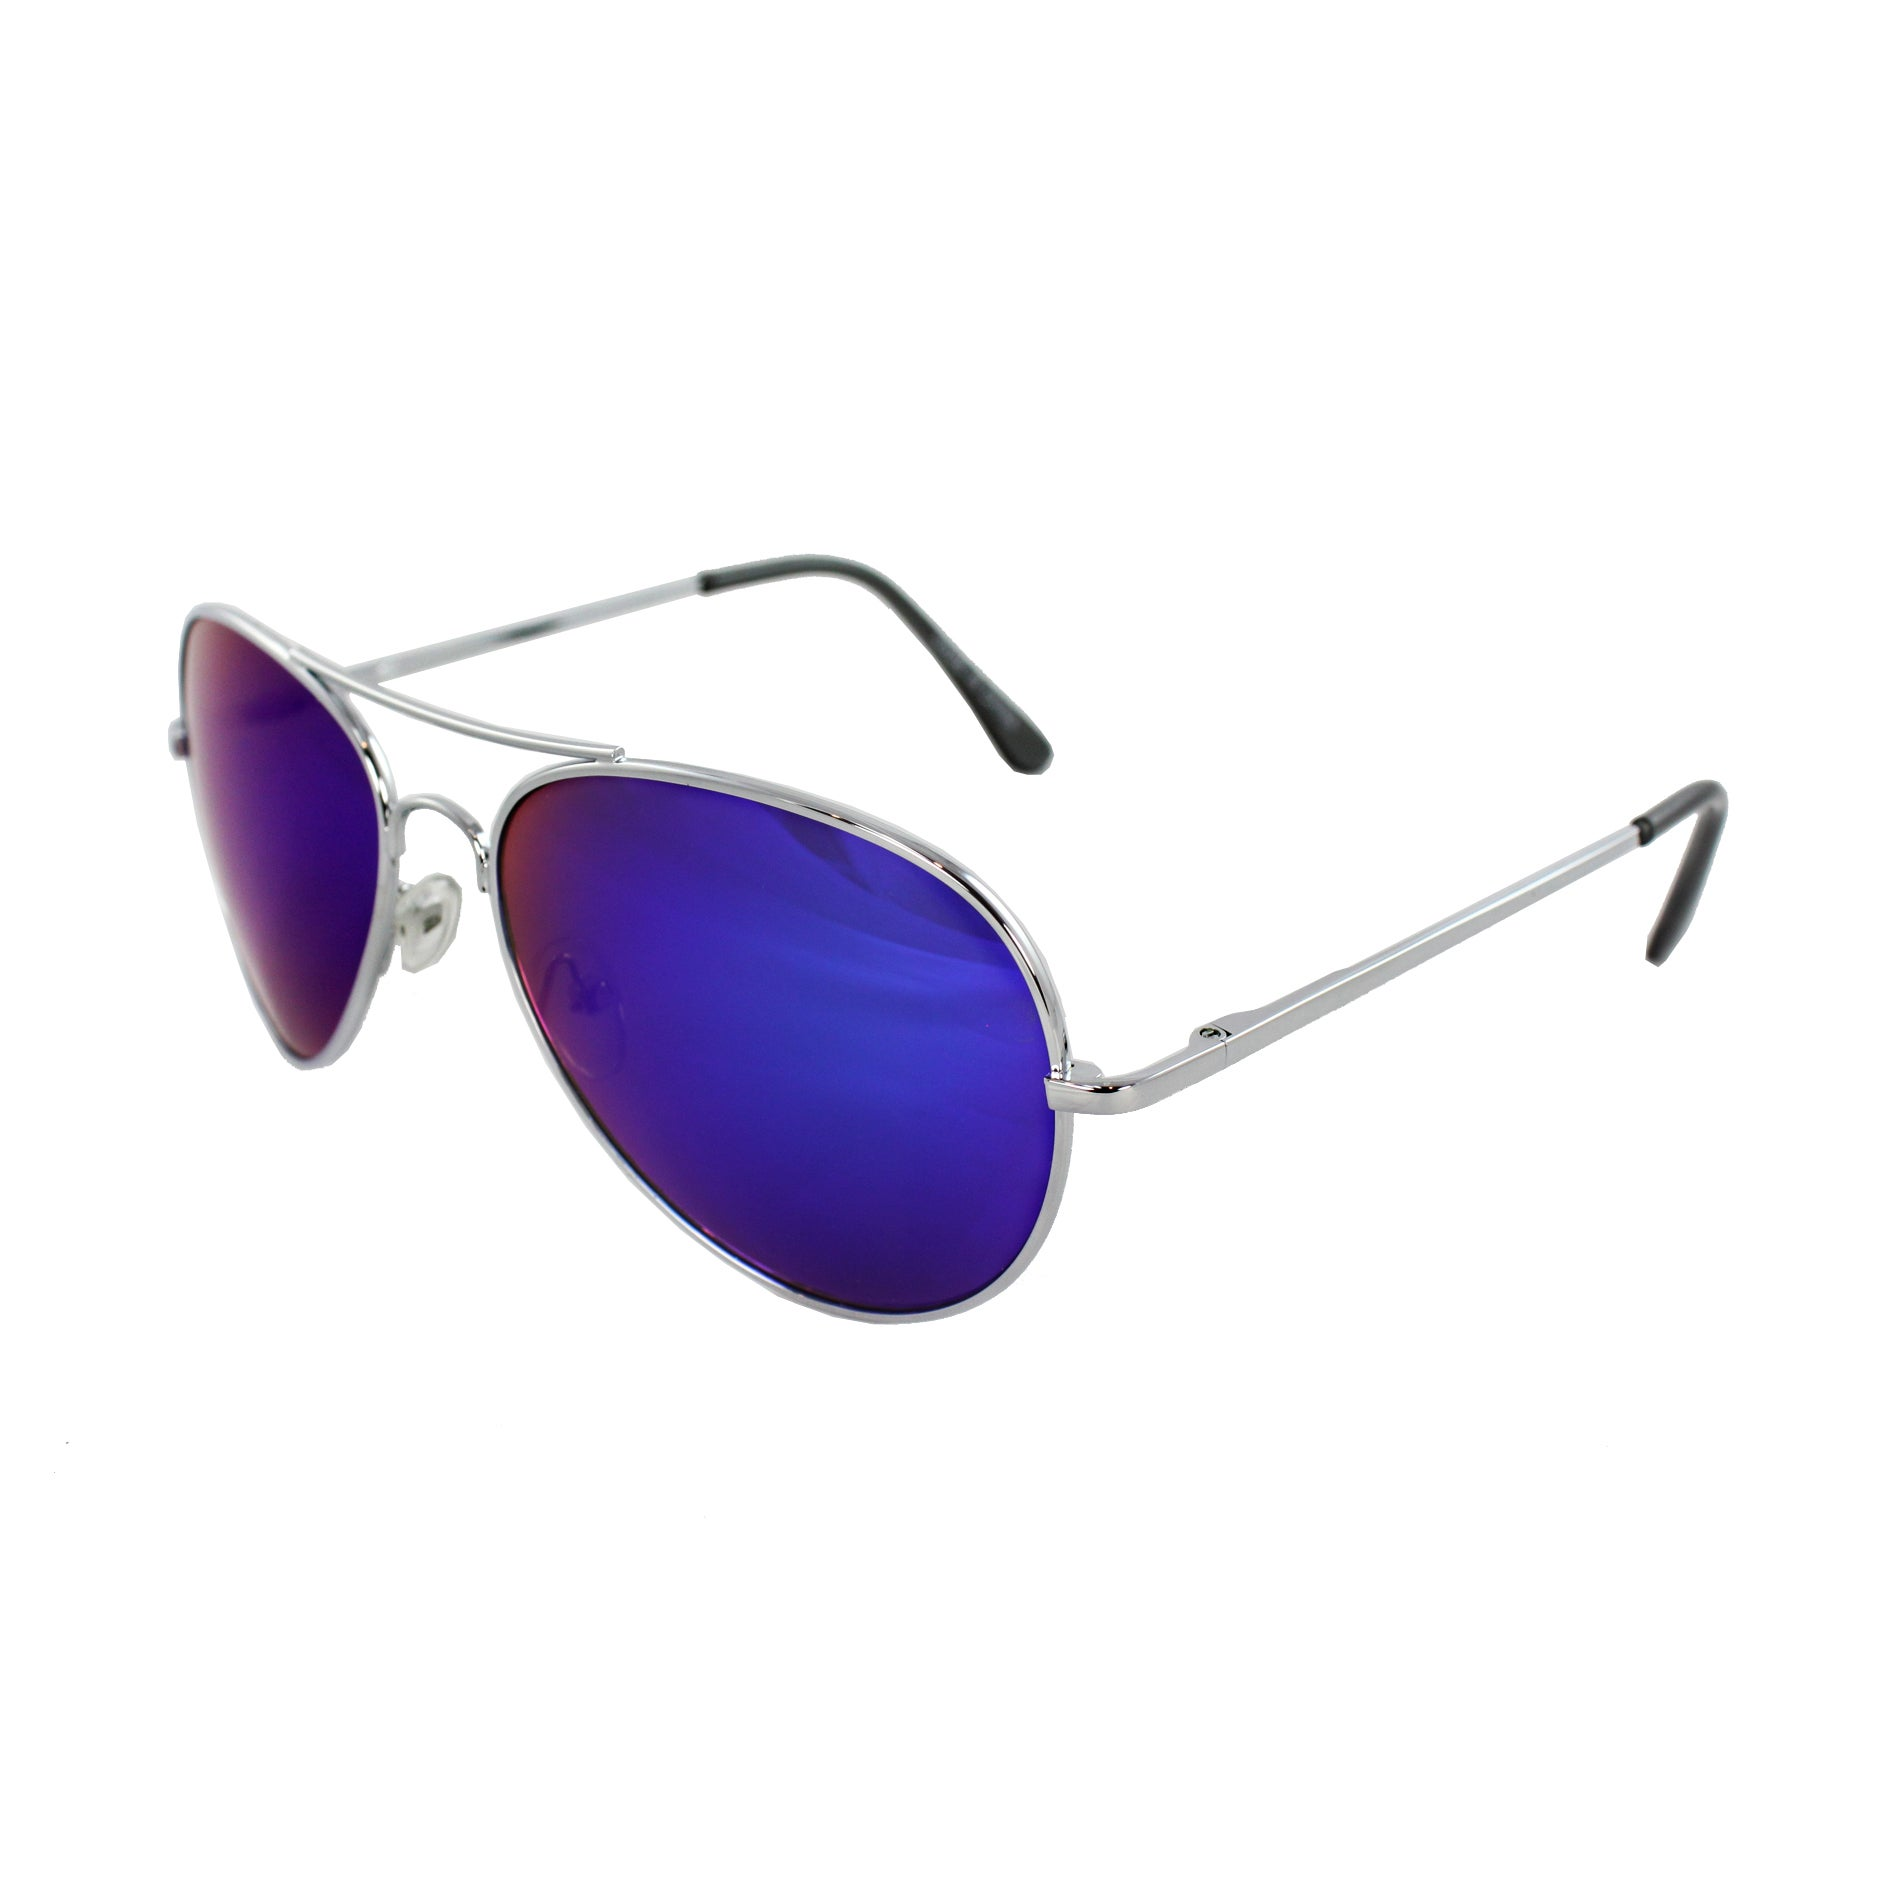 Unisex 30011R-SVRBUGNMR Metal/ Blue Mirror Aviator Sunglasses